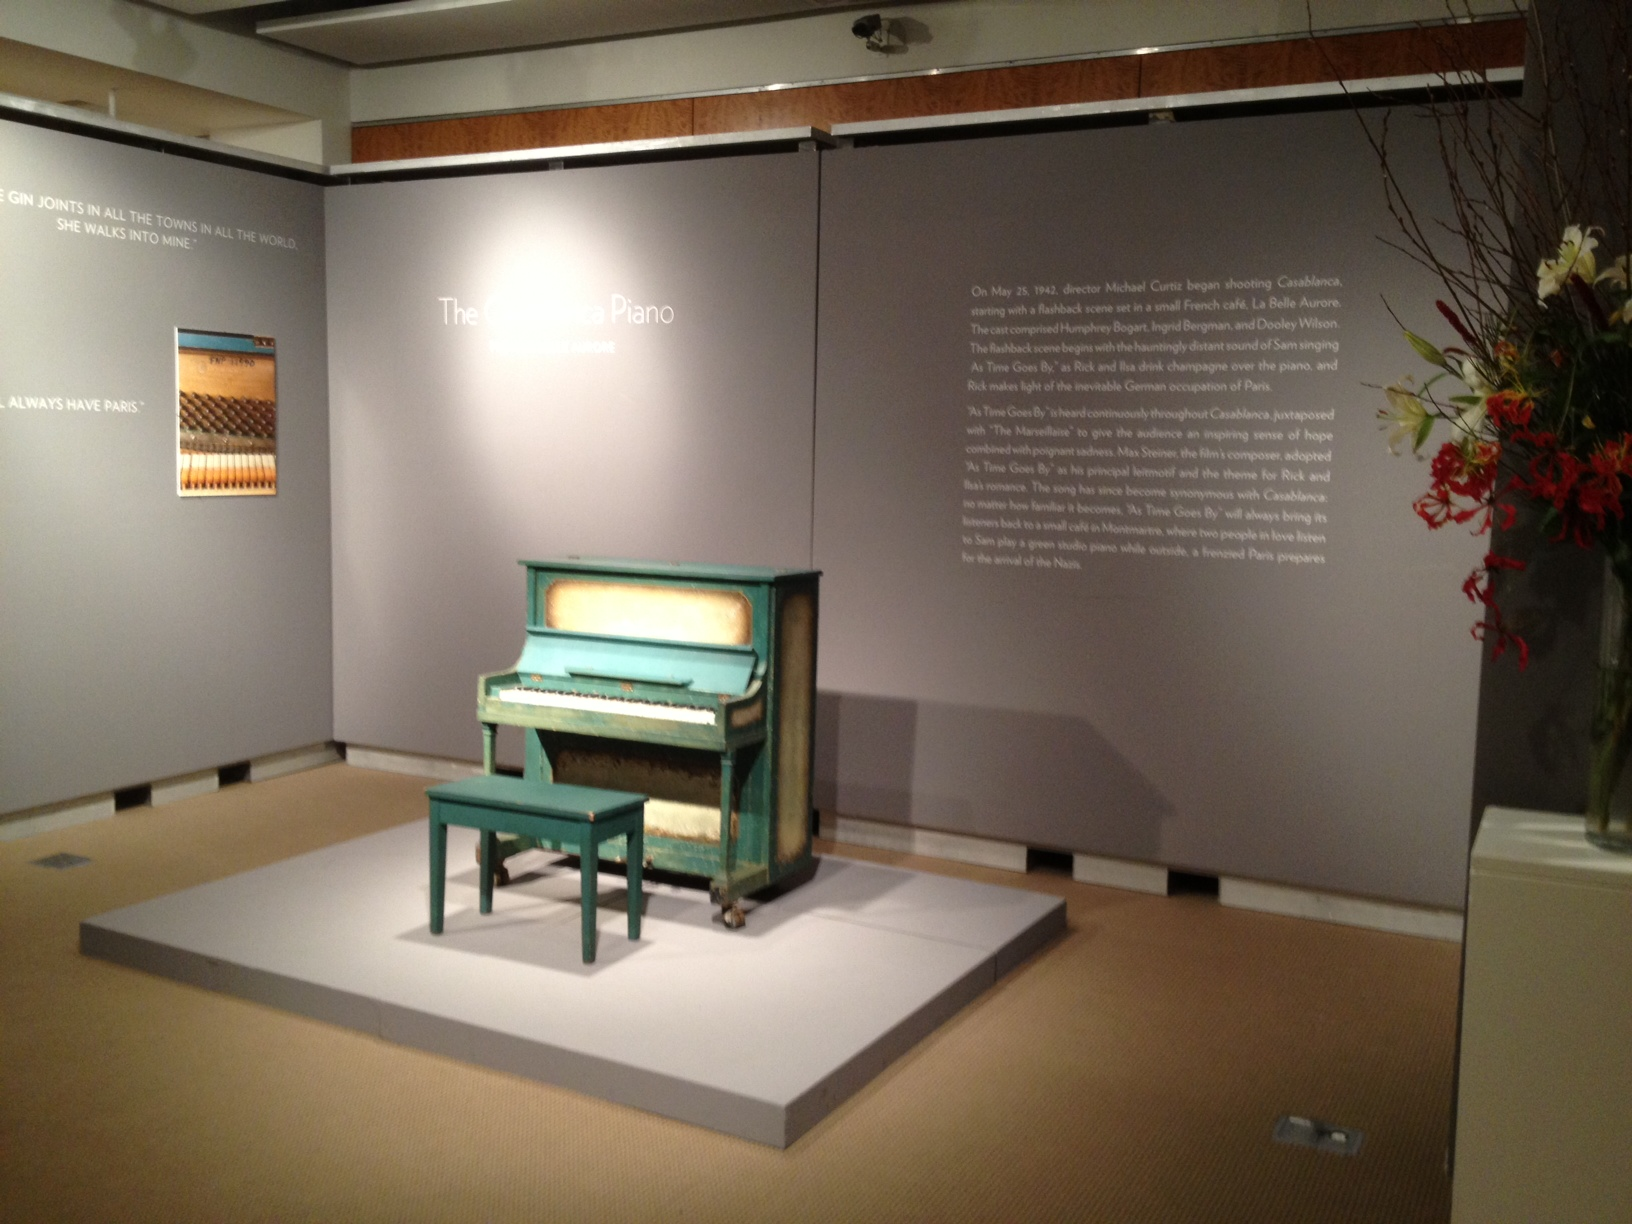 The piano and bench on display at Sotheby's